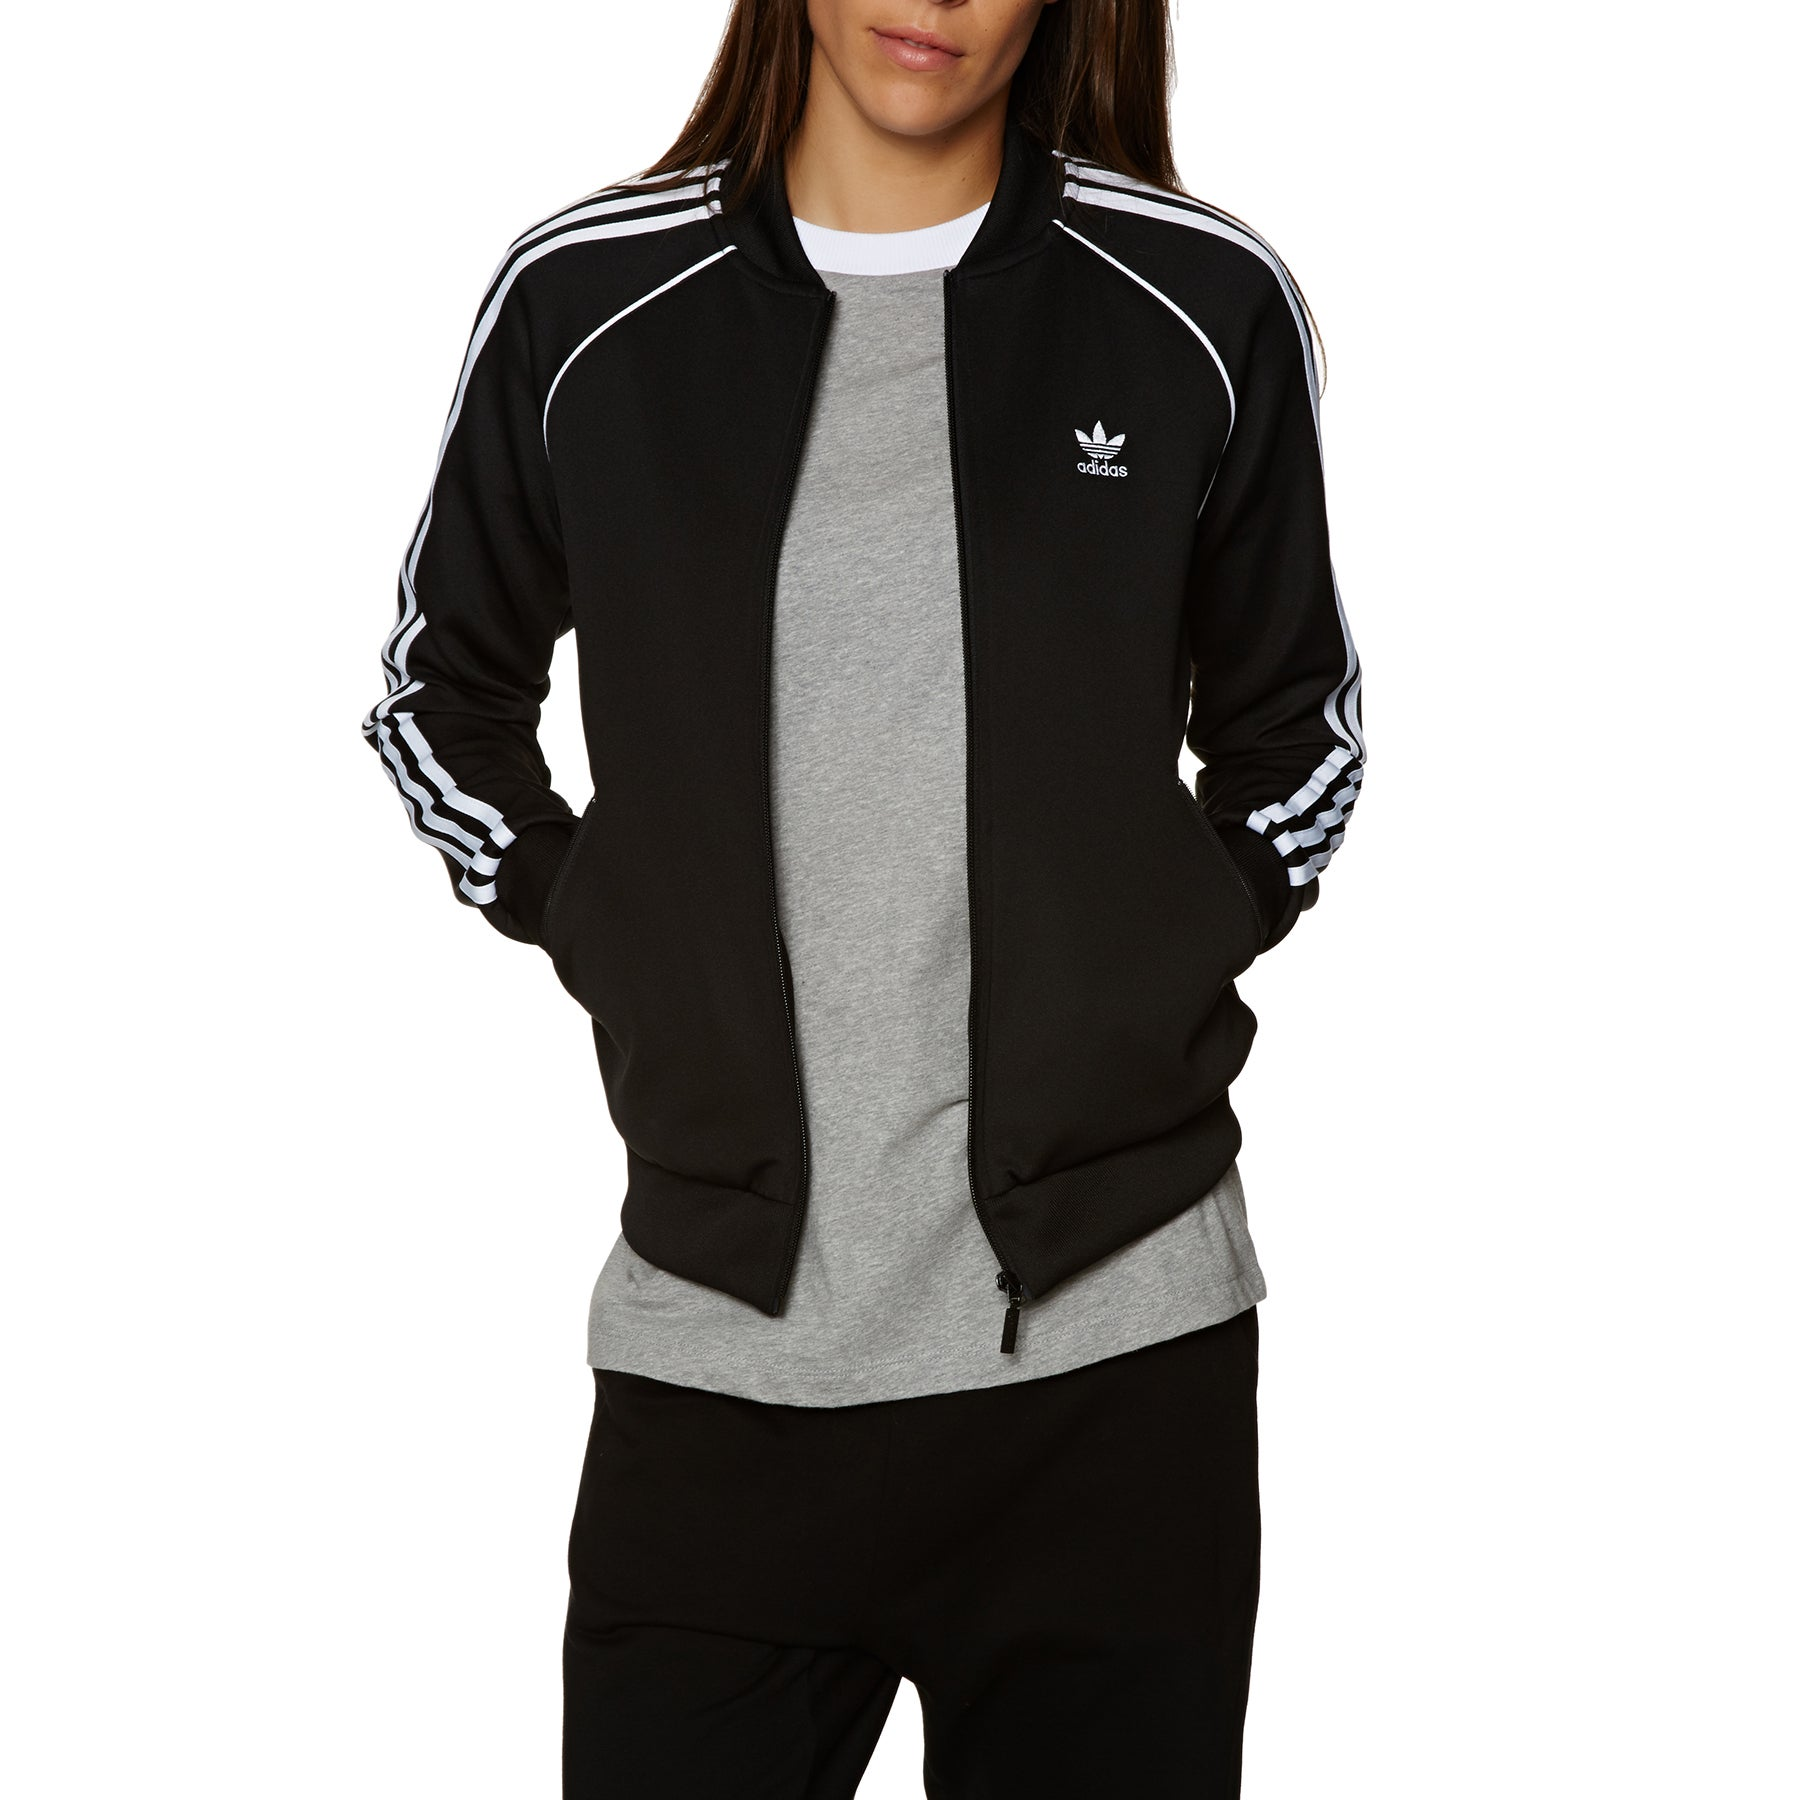 Adidas Originals SST Womens Track Jacket - Black